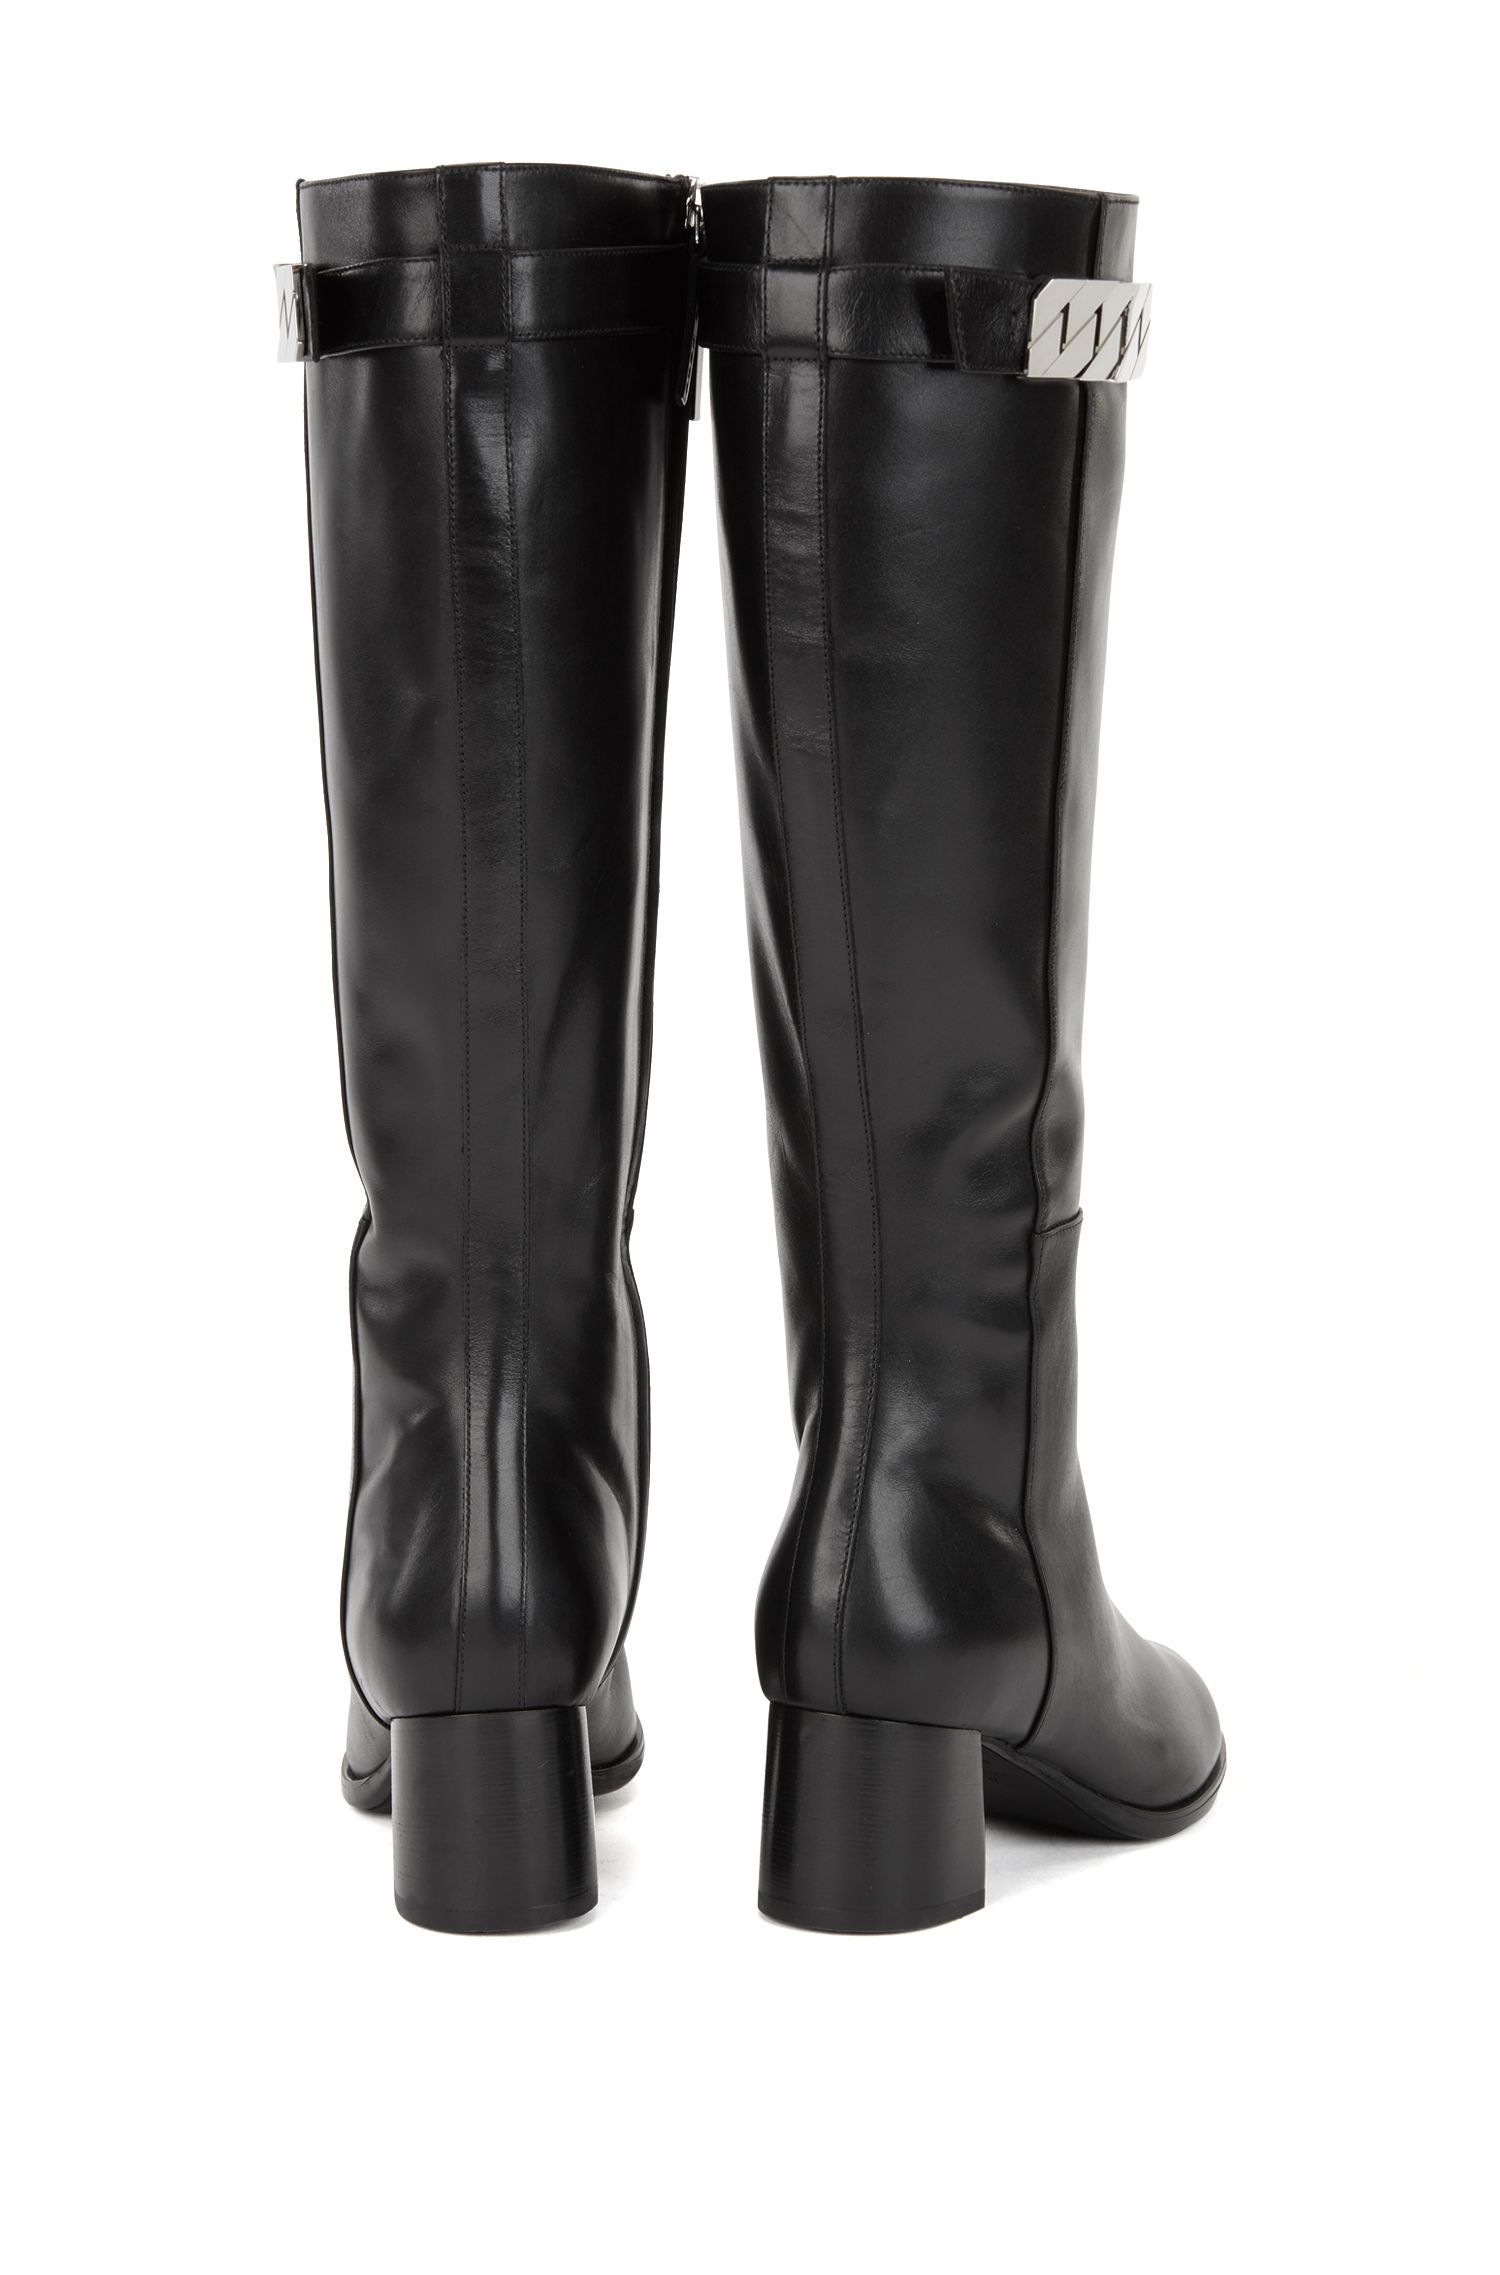 Knee-high boots in Italian leather with chain trim